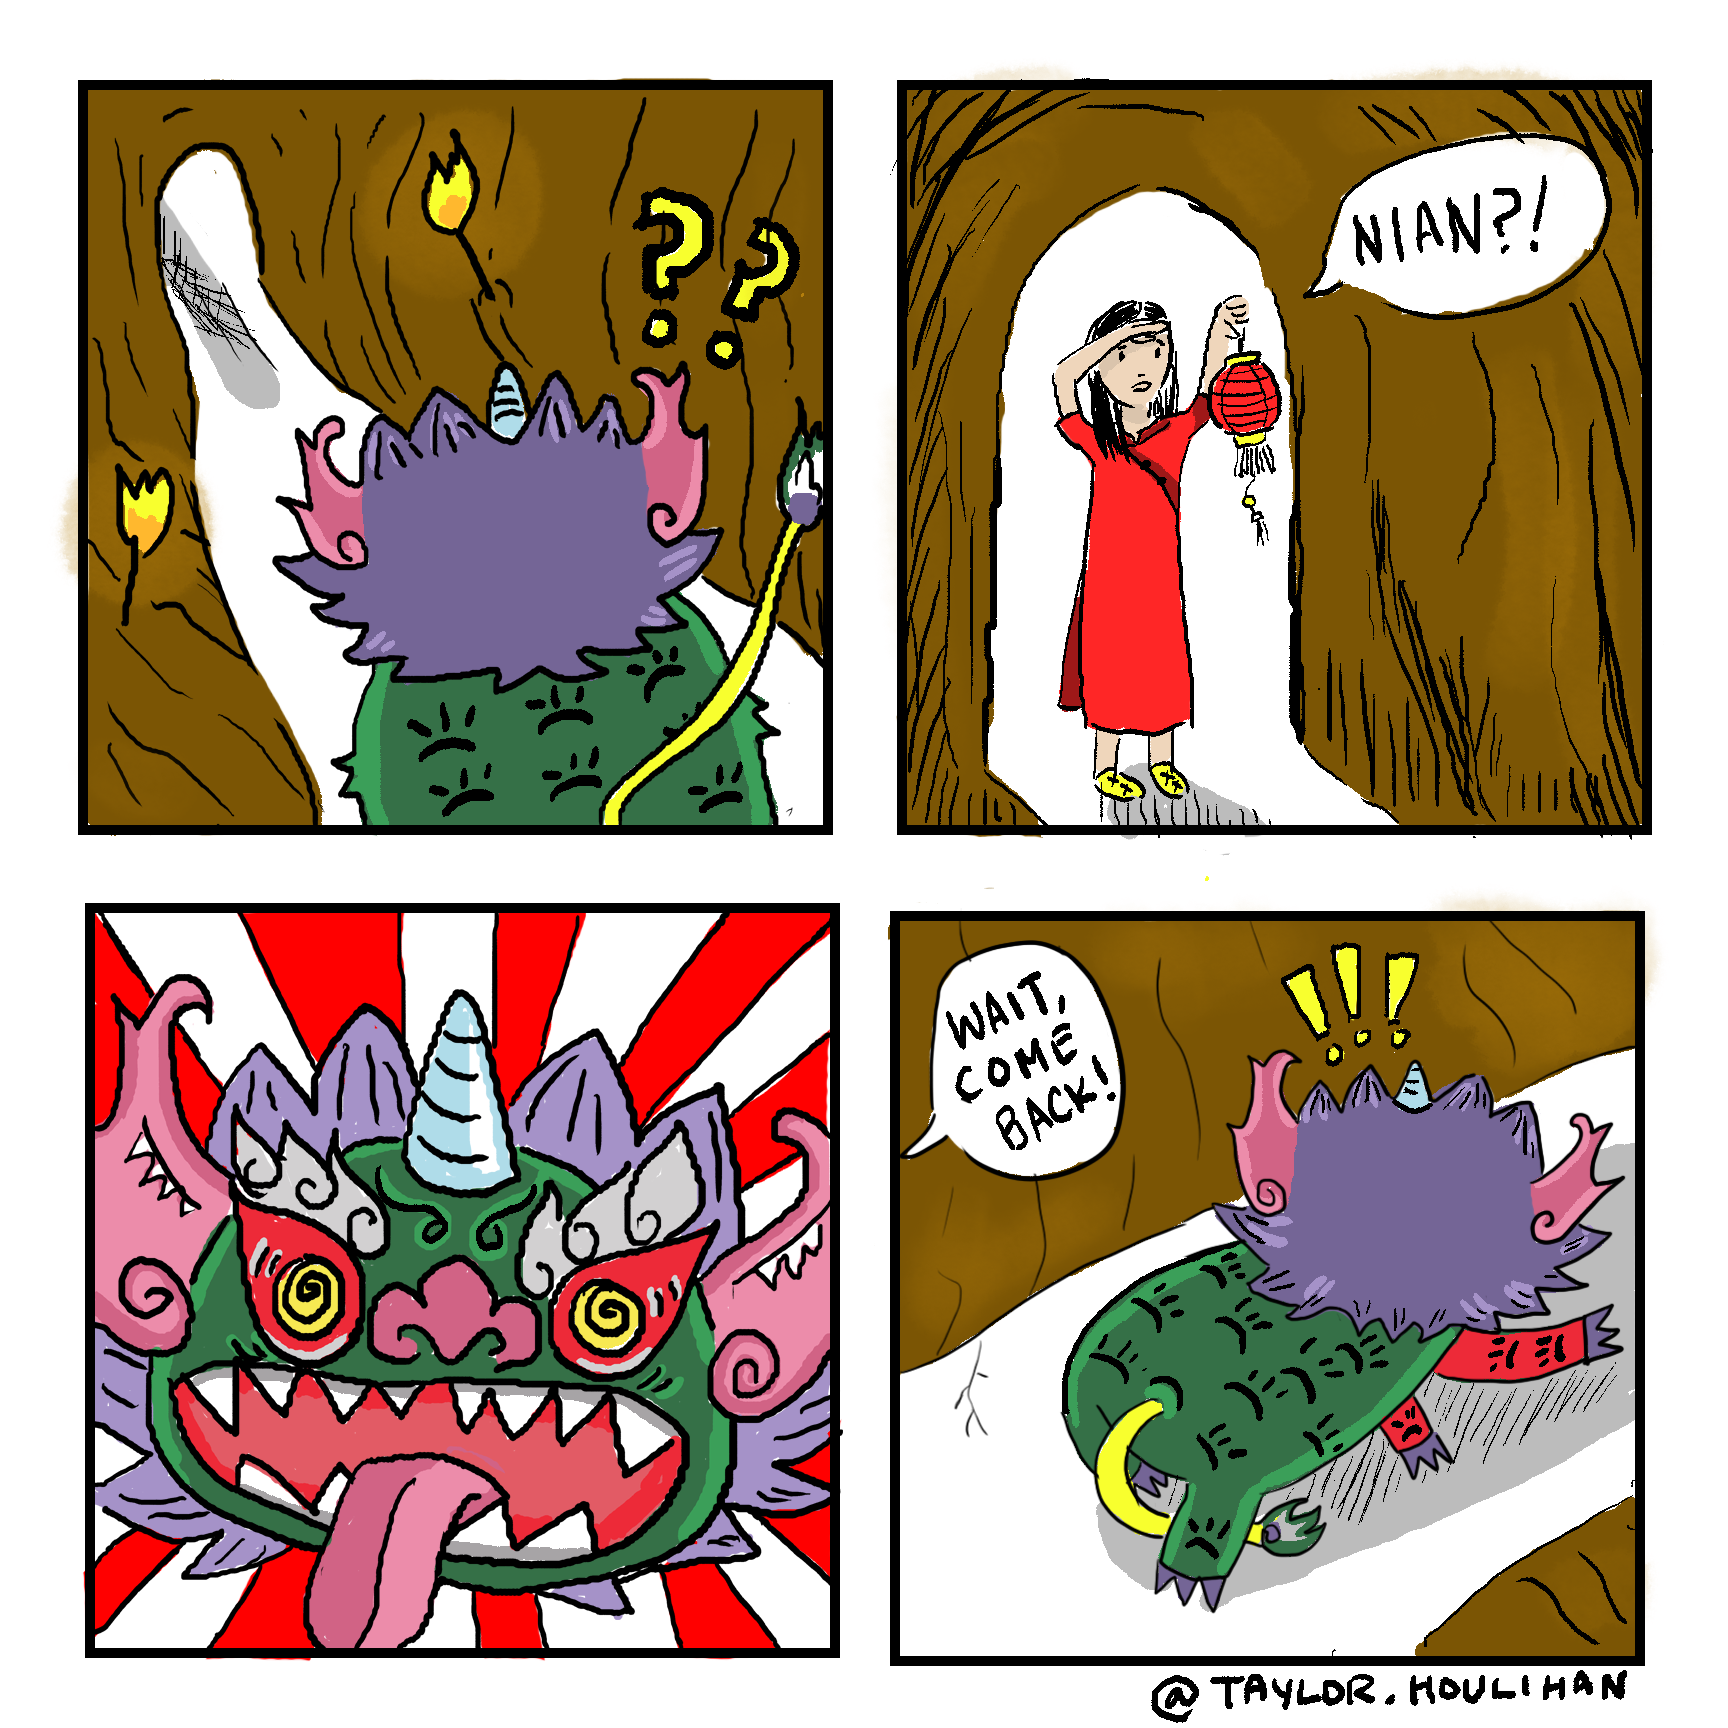 TH_chinesenewyearcomics_1.png